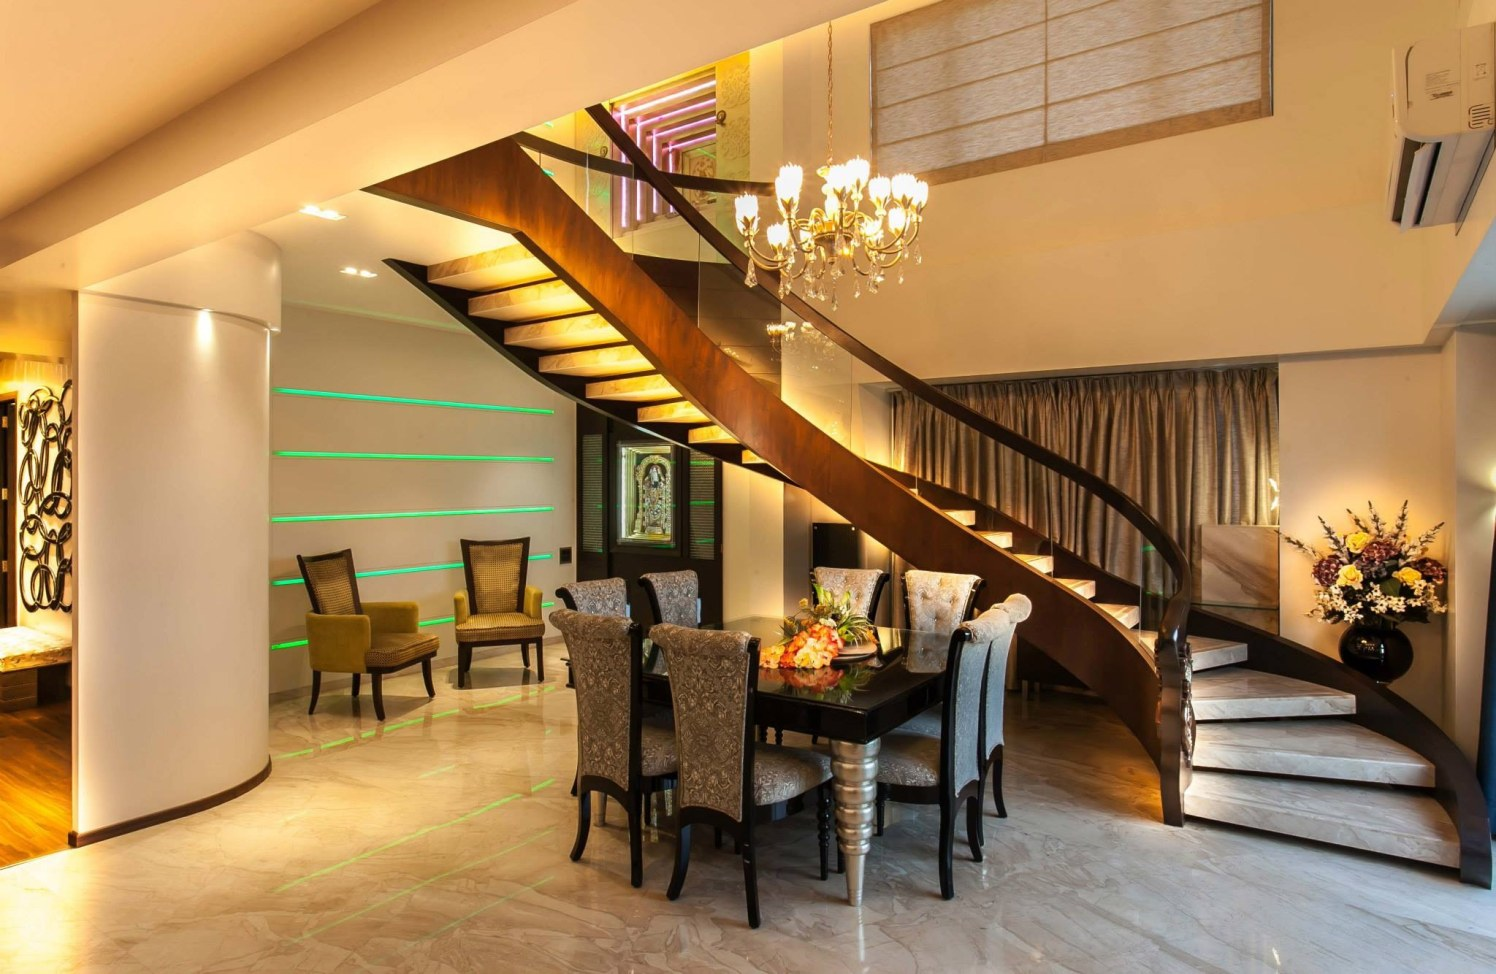 Royal living room stairway by Blue Arch Interiors Indoor-spaces | Interior Design Photos & Ideas